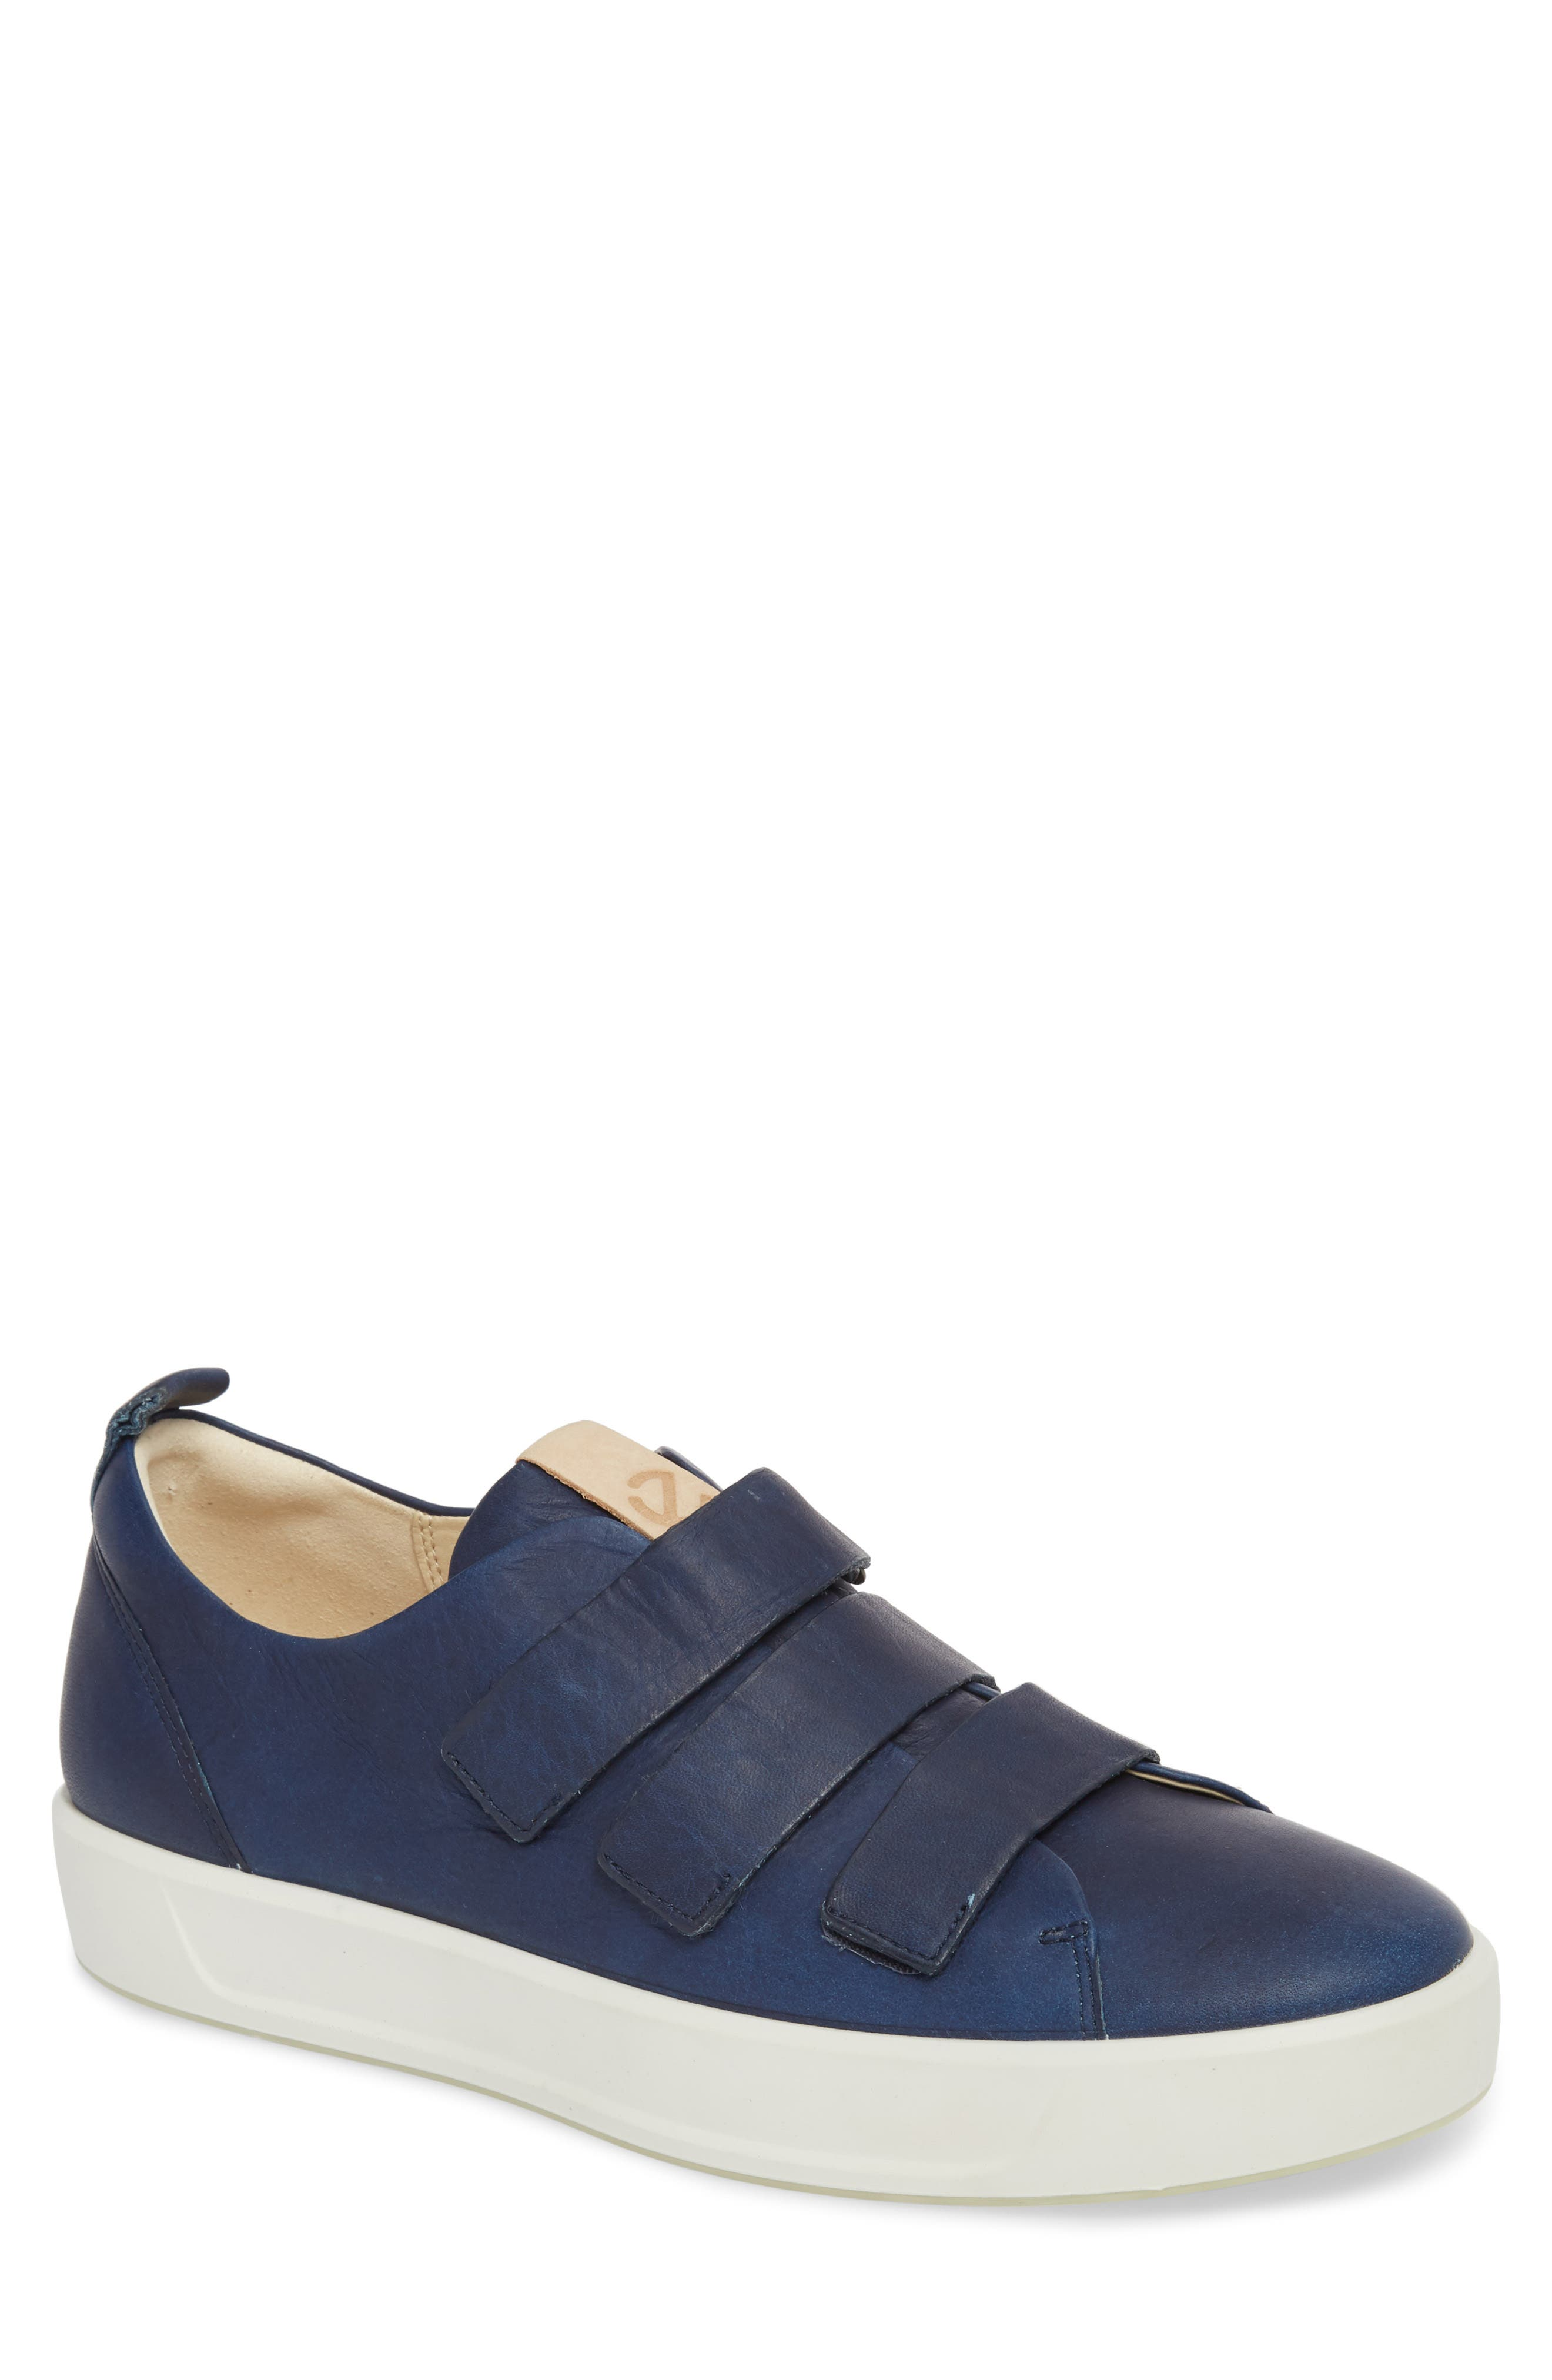 Soft 8 Strap Sneaker,                             Main thumbnail 1, color,                             Indigo 7 Leather